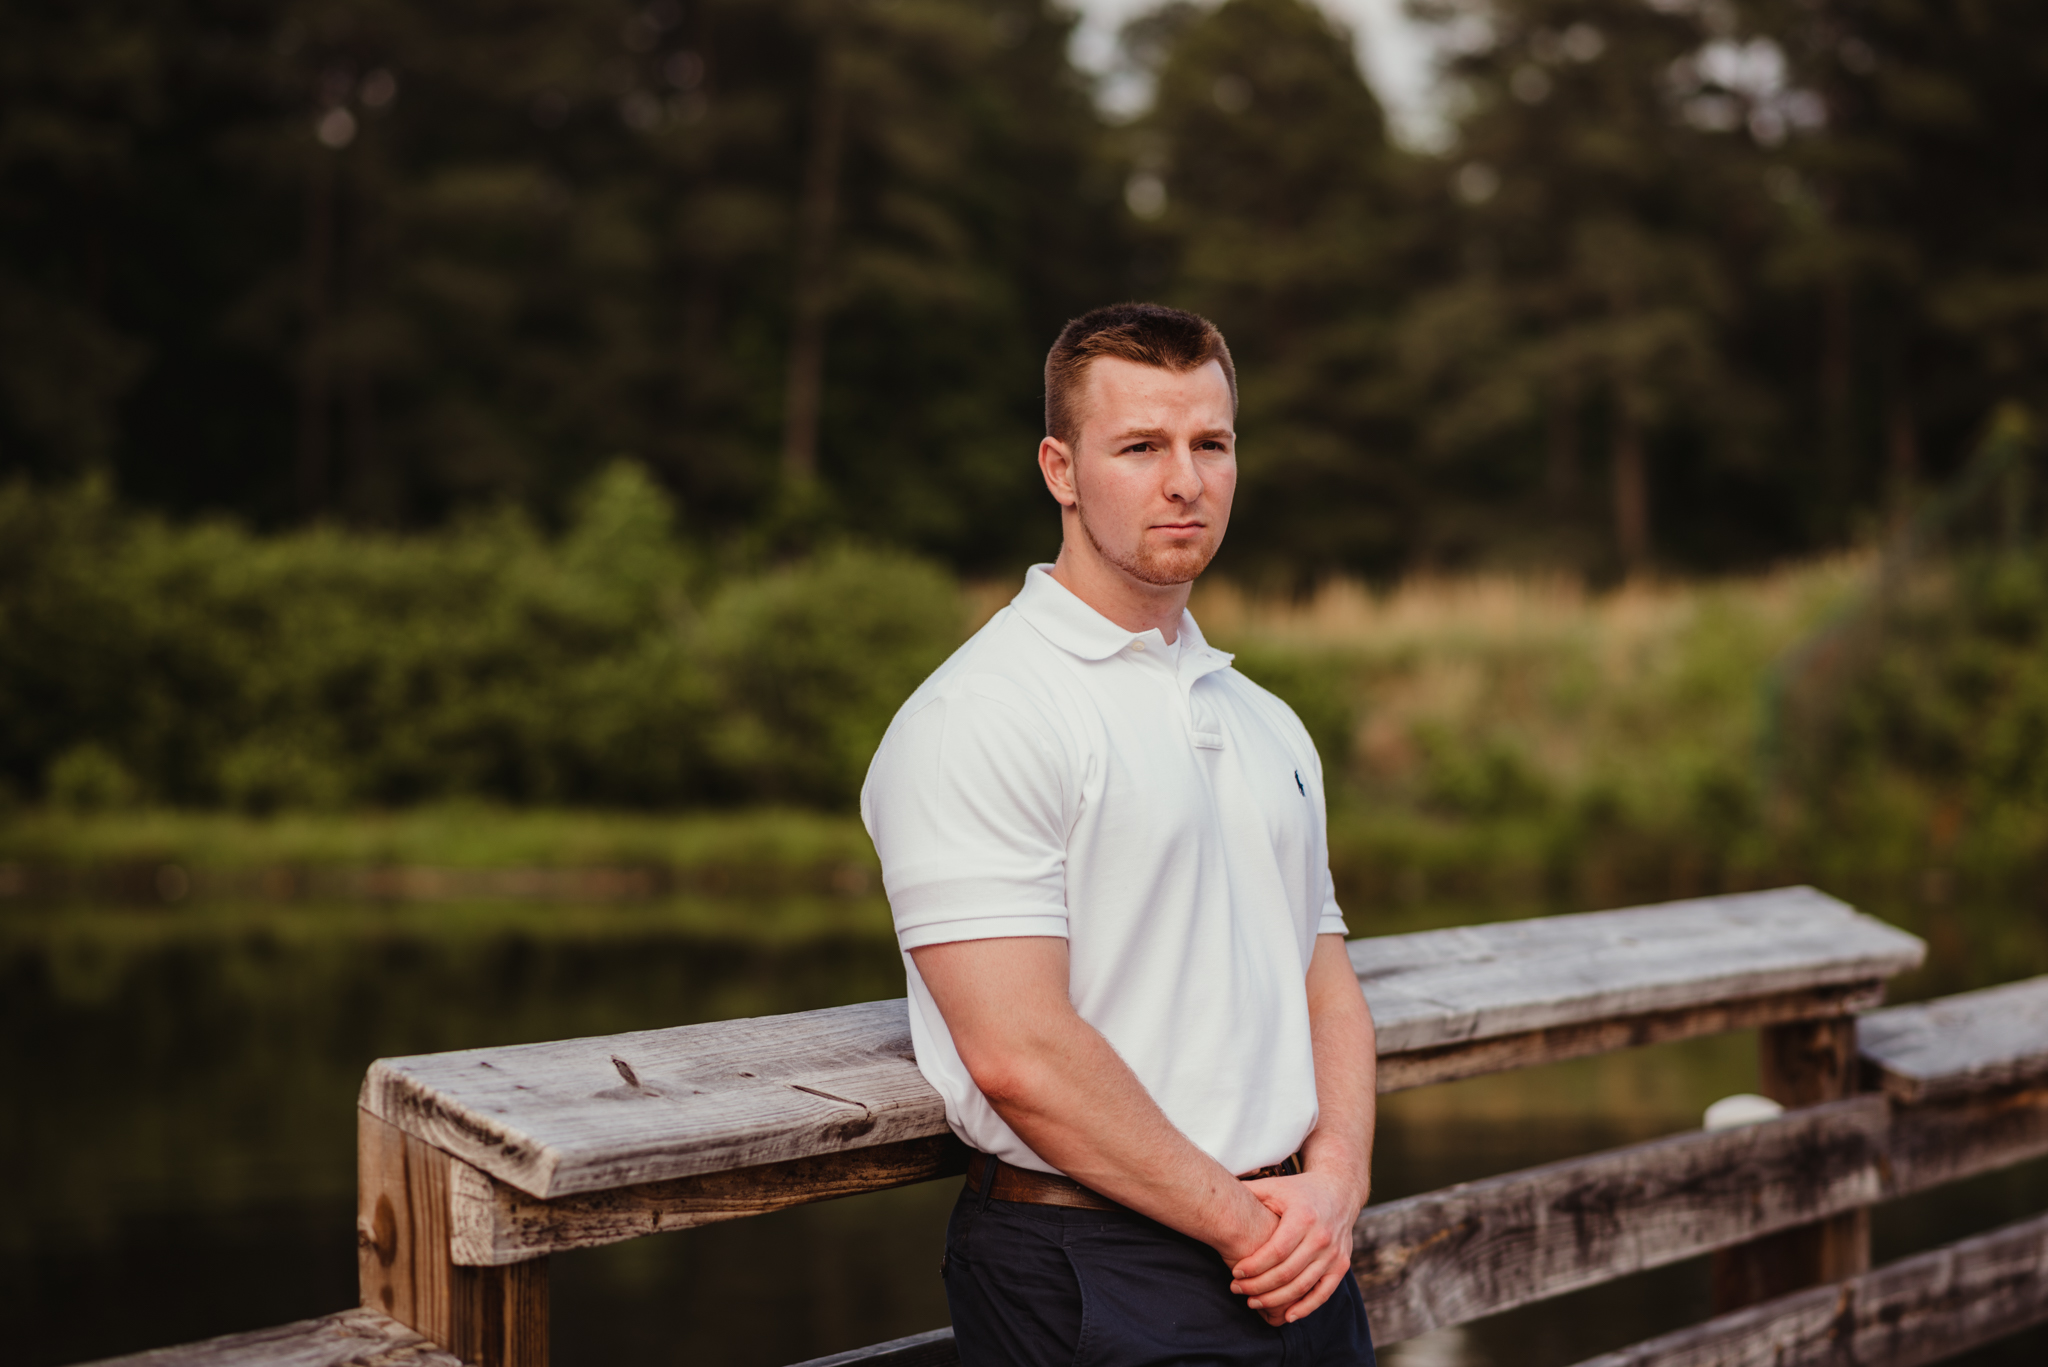 Harrison, standing on the dock, had his senior portraits done at Durant Nature Preserve in Raleigh, NC by Rose Trail Images.